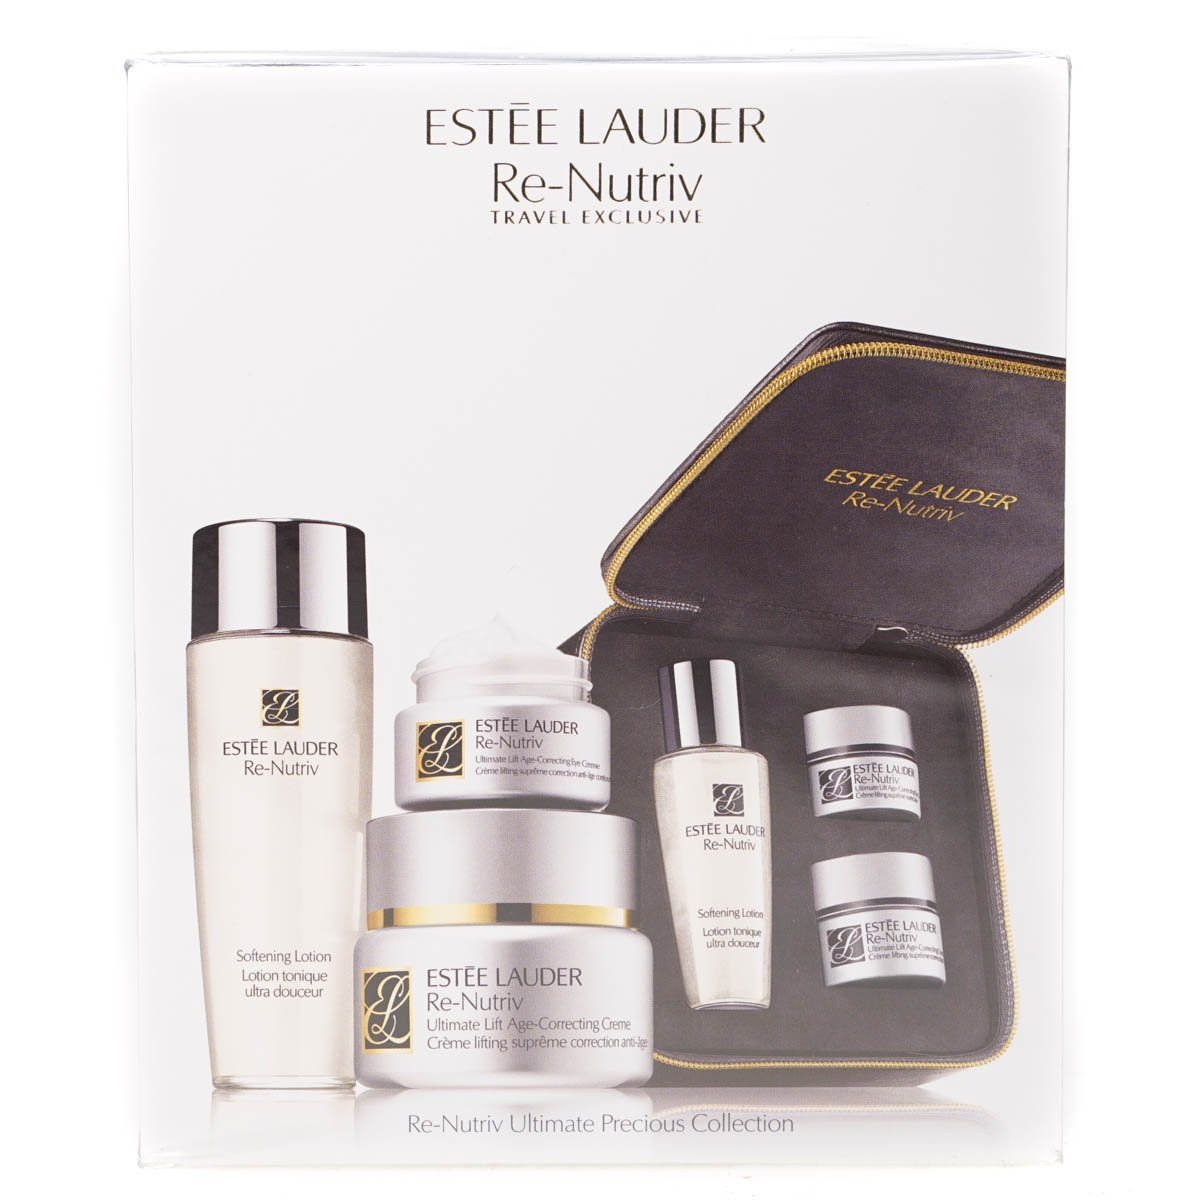 Estee Lauder re-nutriv Ultimate Precious Collection – re-nutriv ...